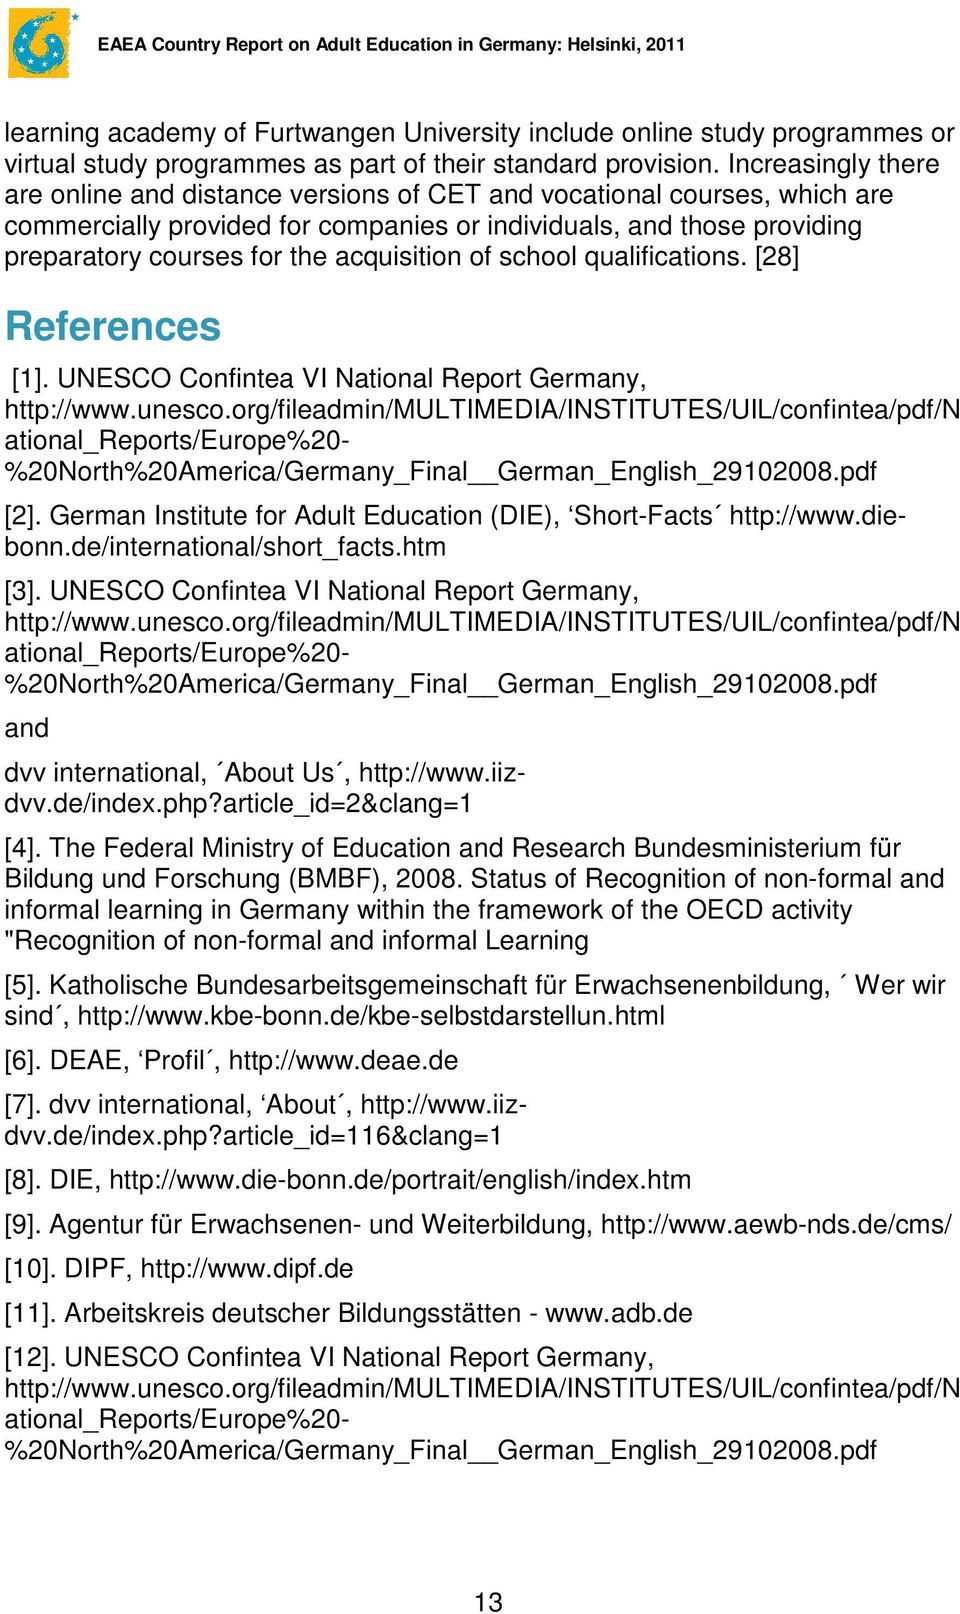 acquisition of school qualifications. [28] References [1]. UNESCO Confintea VI National Report Germany, http://www.unesco.